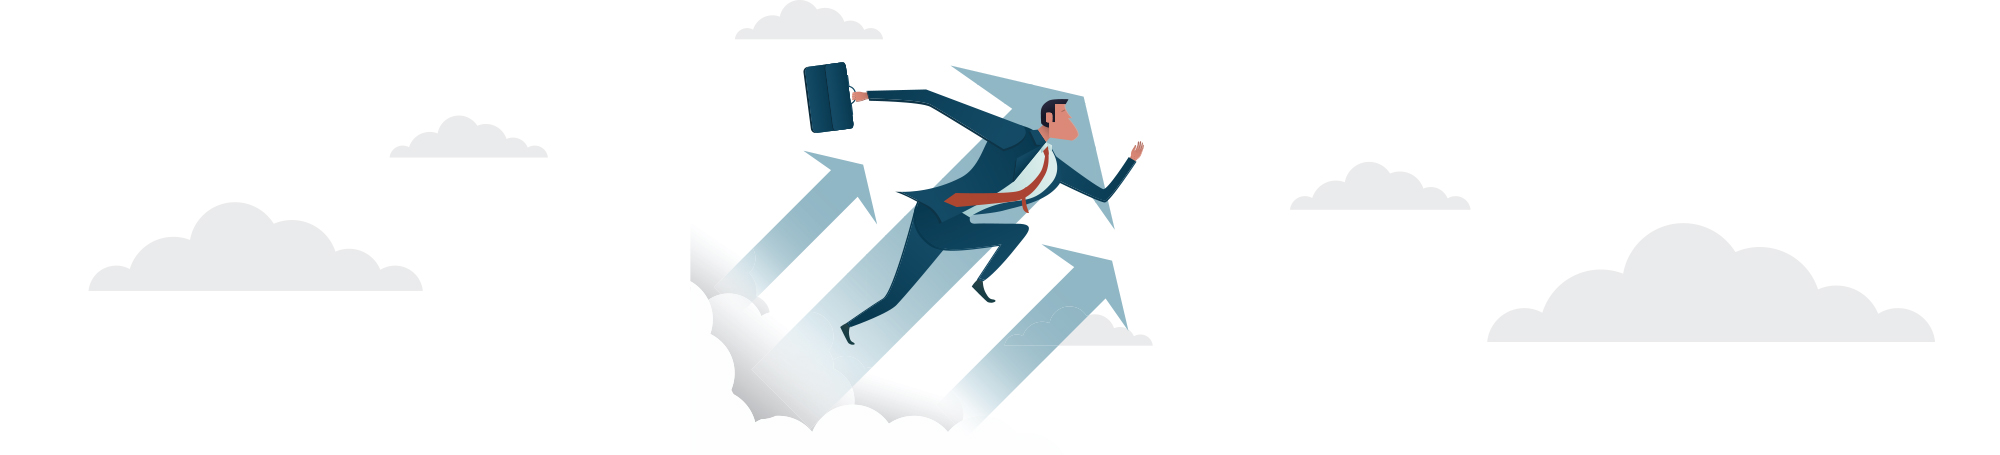 Illustration of person moving up in clouds